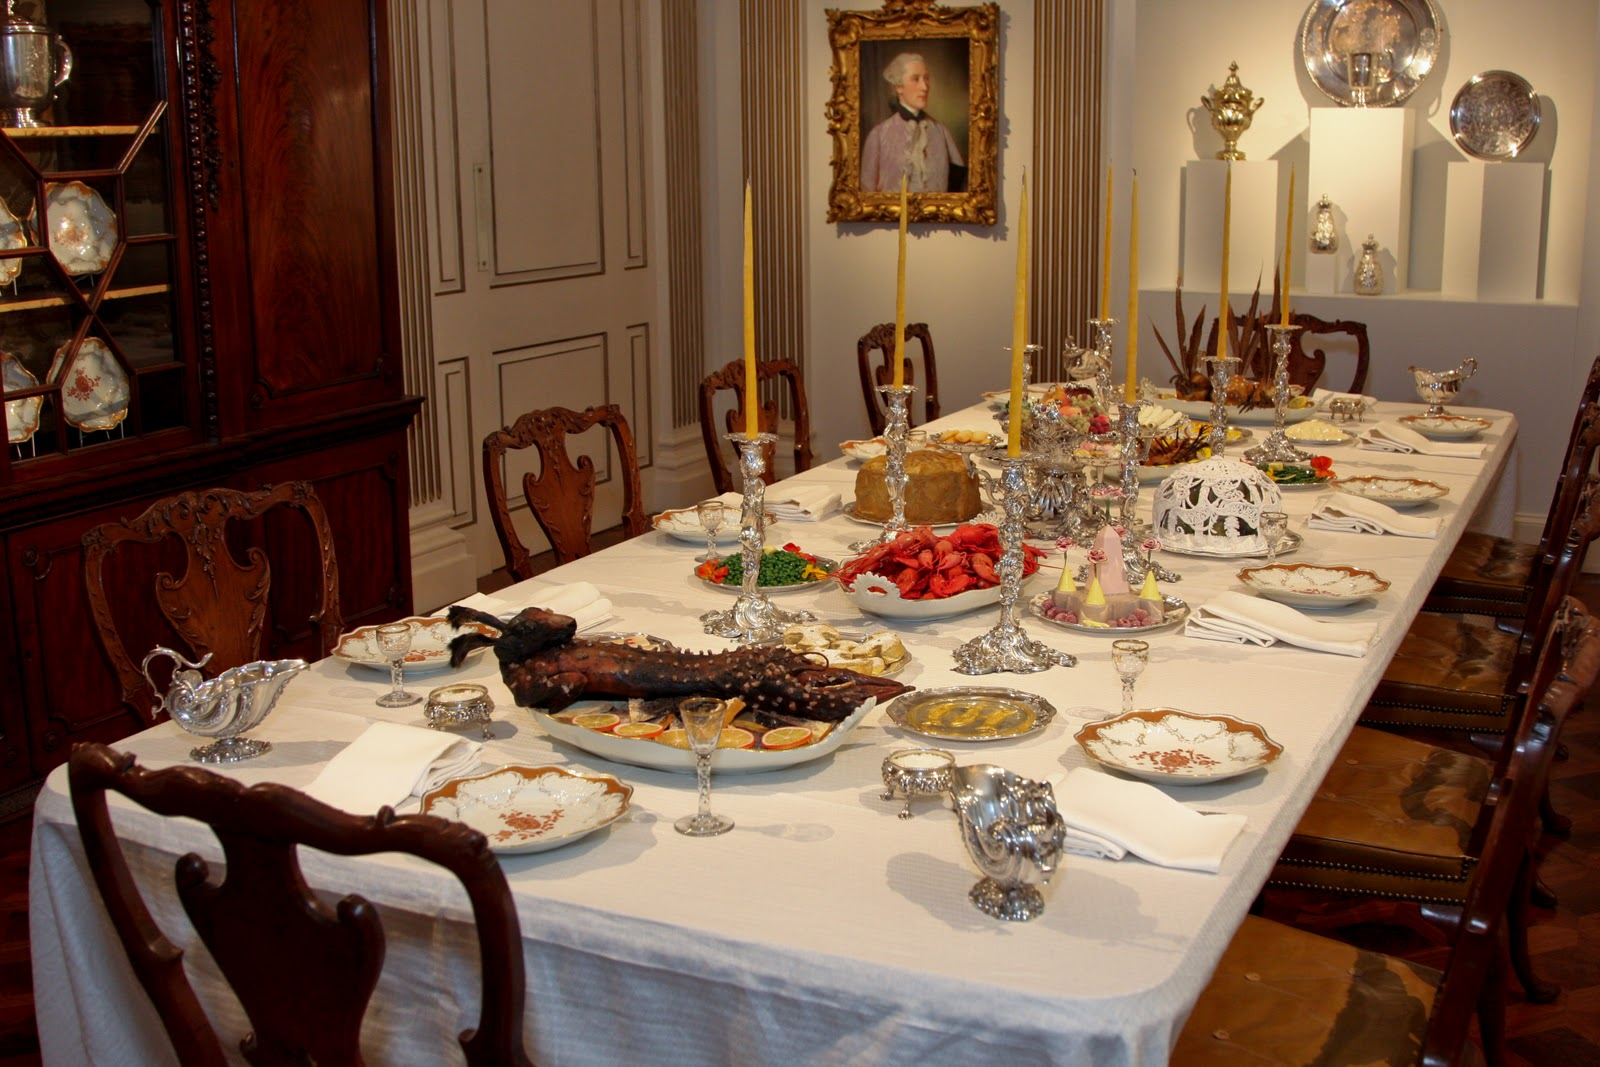 Eighteenth Century table setting at Rienzi MFAH Houston Texas & Food History Jottings: Mrs Raffald puts on her cowboy boots and goes ...